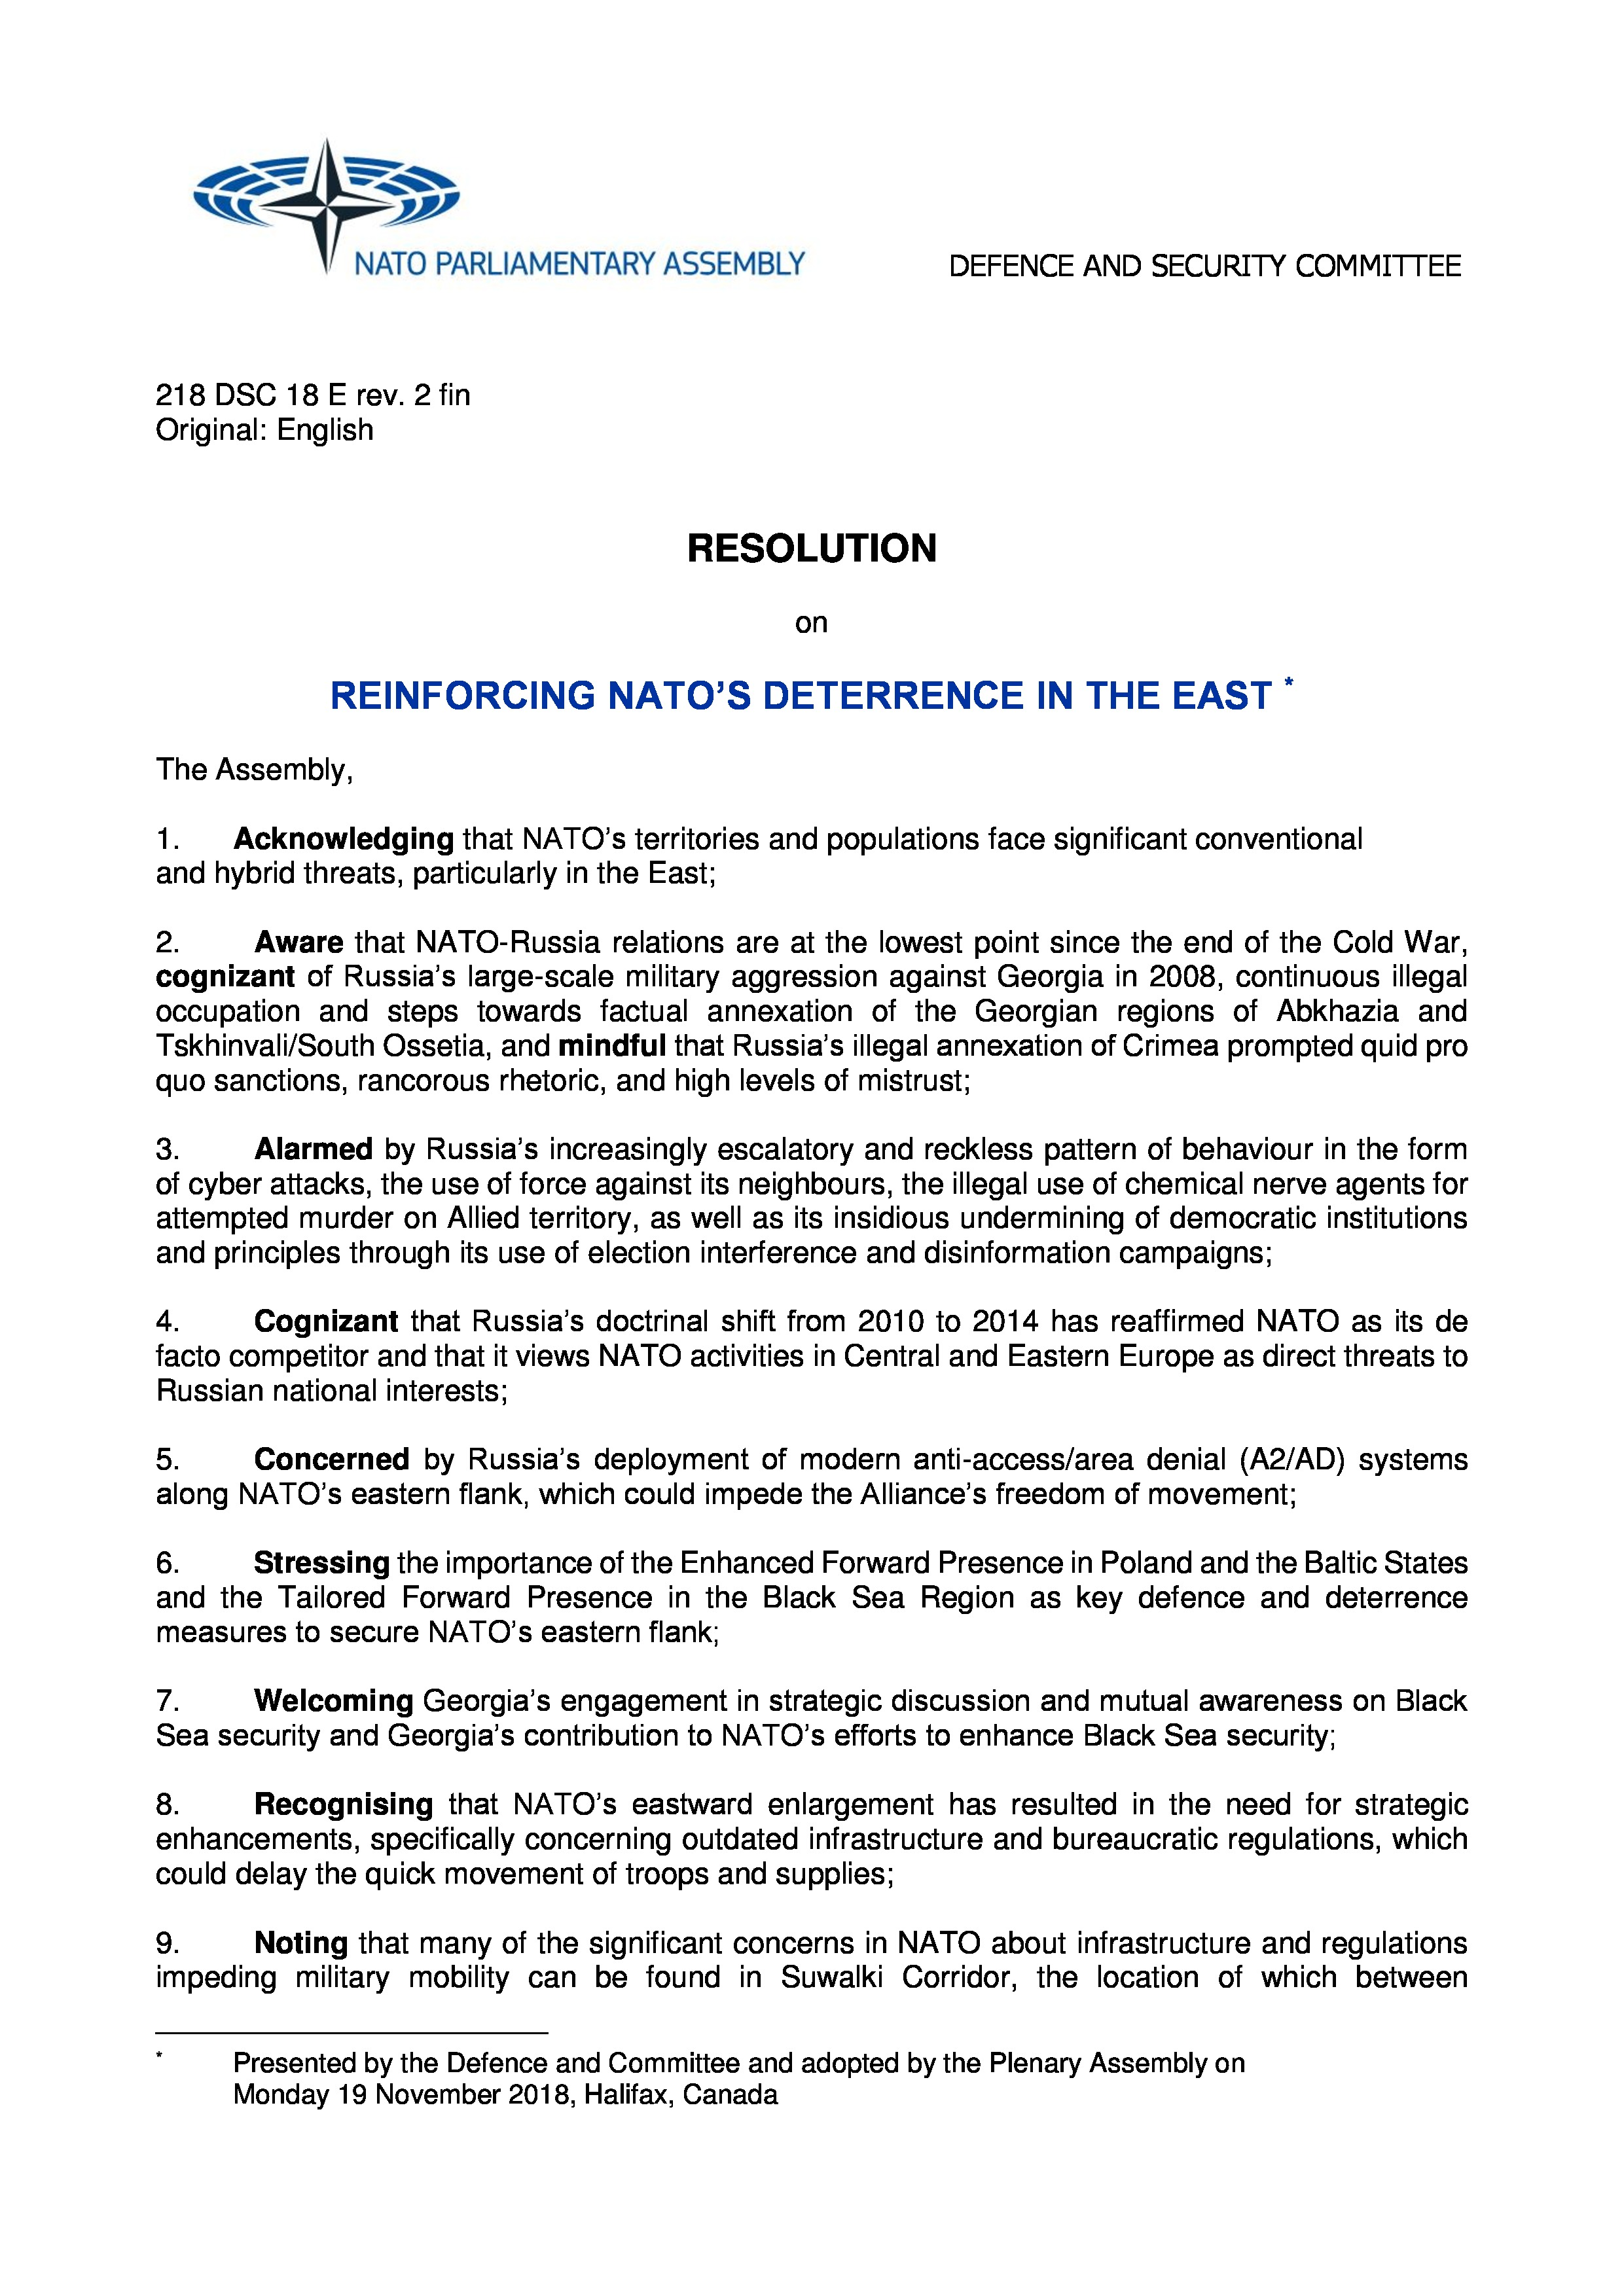 RESOLUTION 448 - REINFORCING NATO S DETERRENCE IN THE EAST - DSC 9419c5a93654